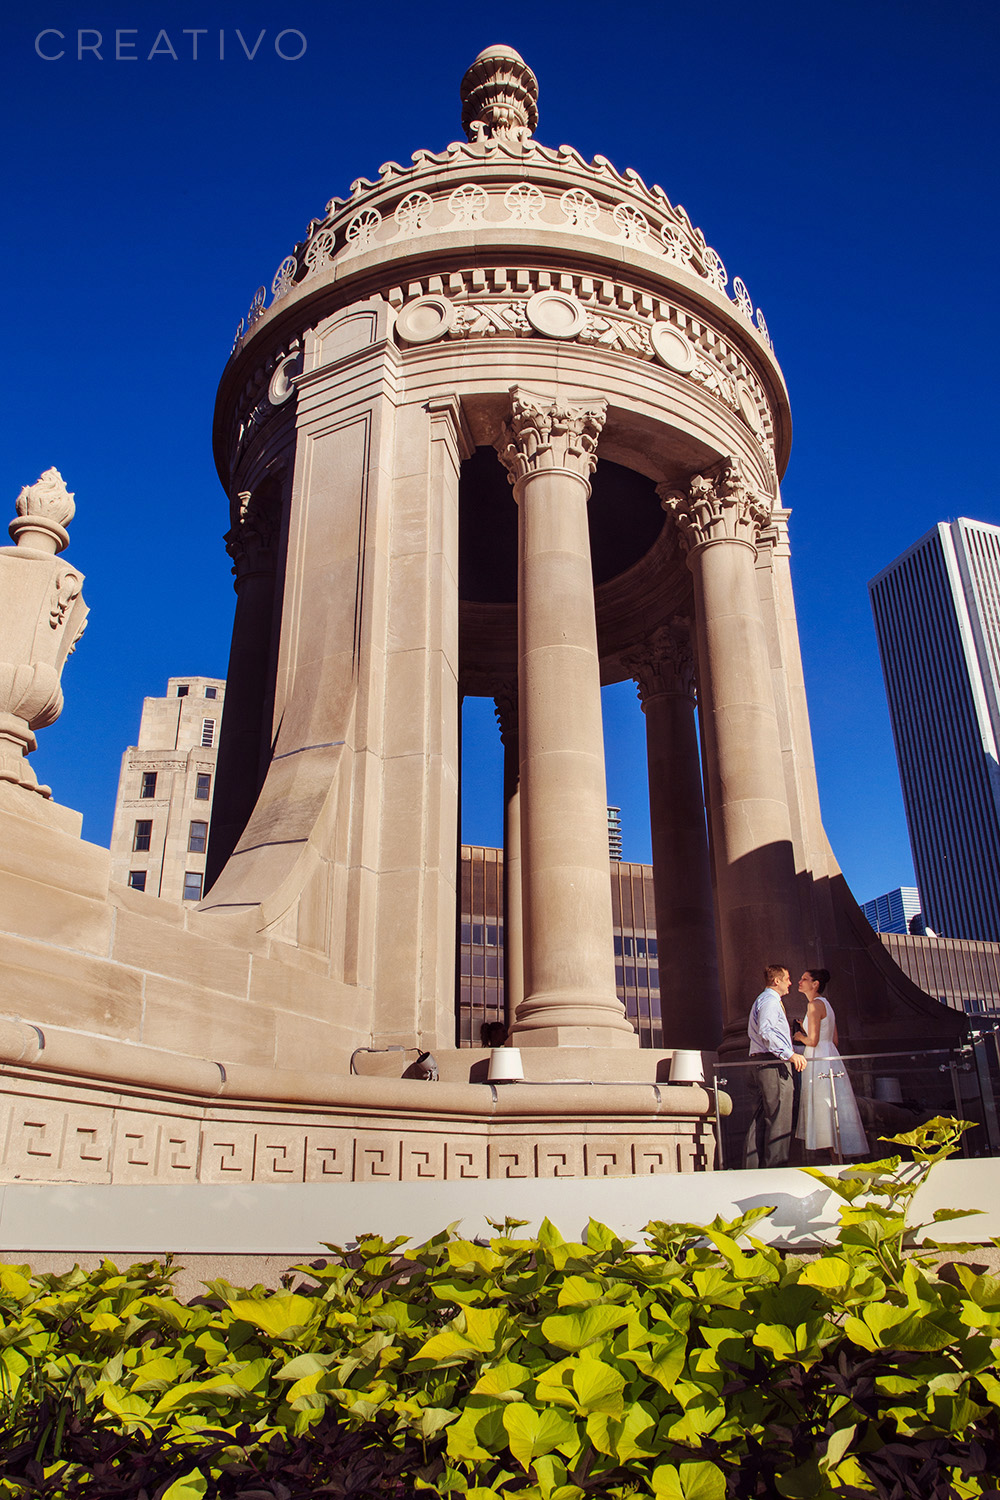 22. Rooftop elopement at the top of one of Chicago's many recently revived architectural gems